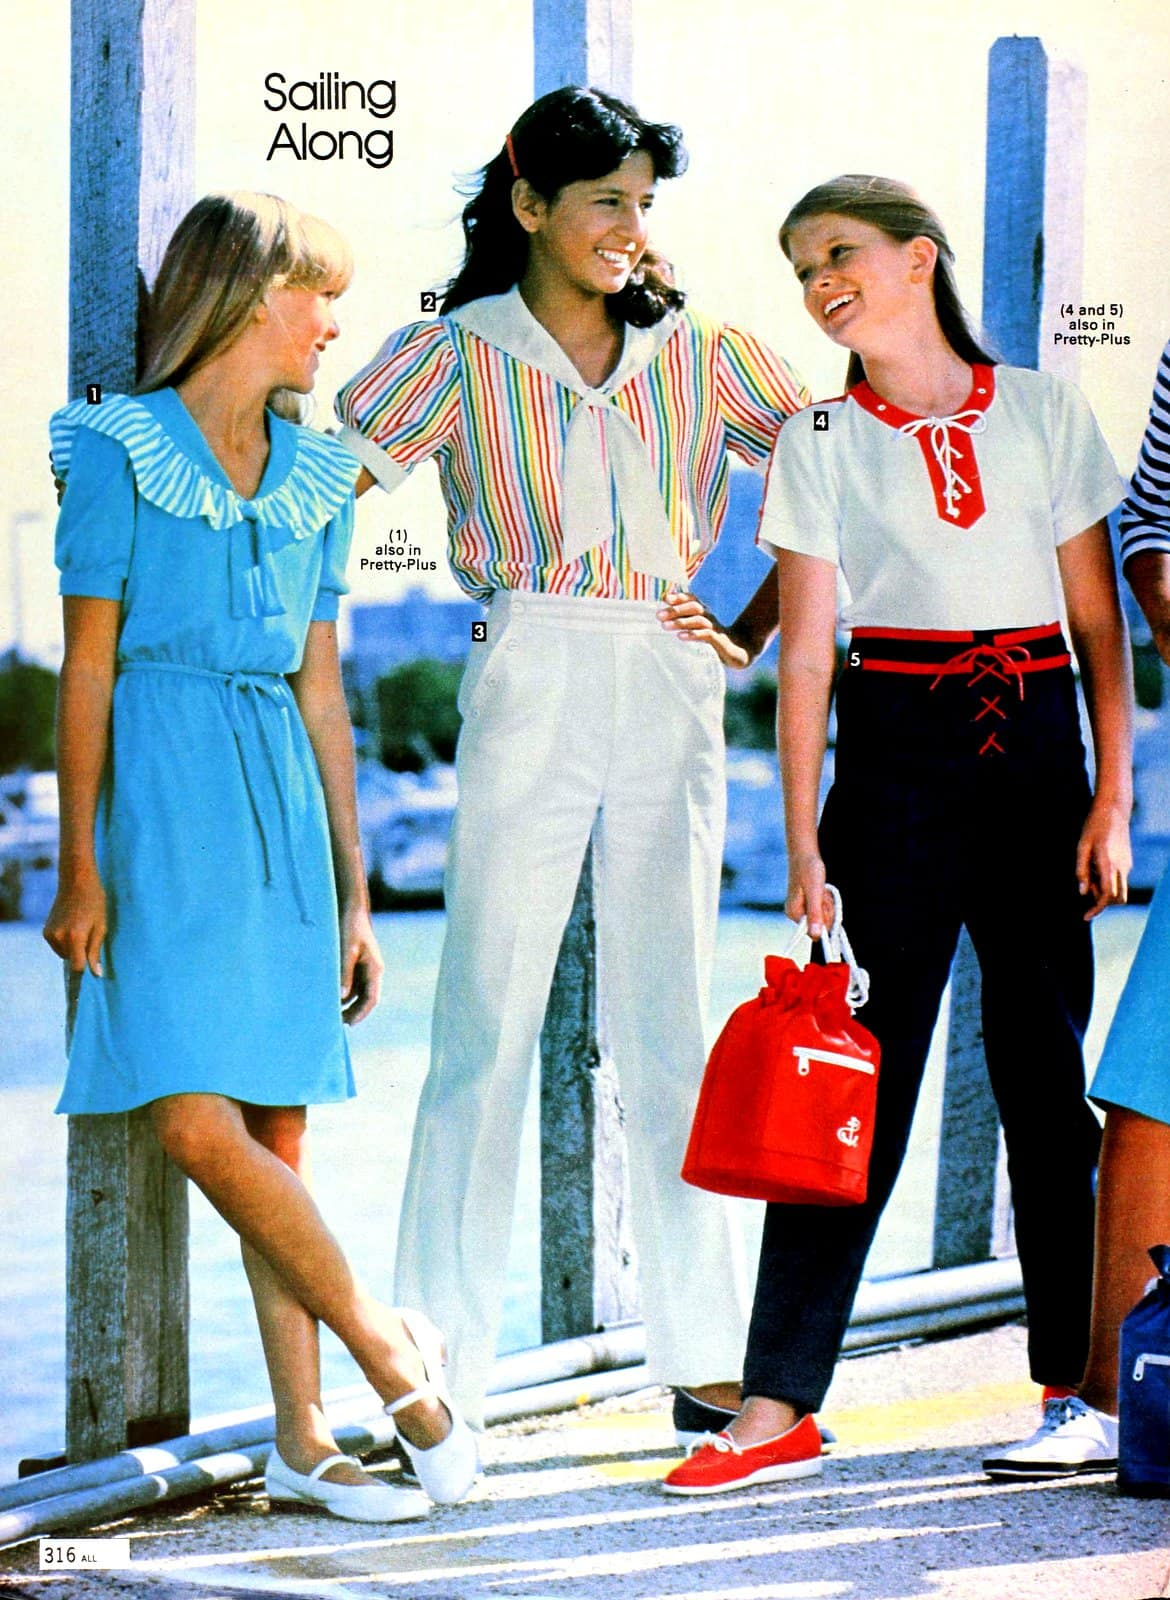 Sailing along - Retro 80s spring clothes for the shore and sailboat